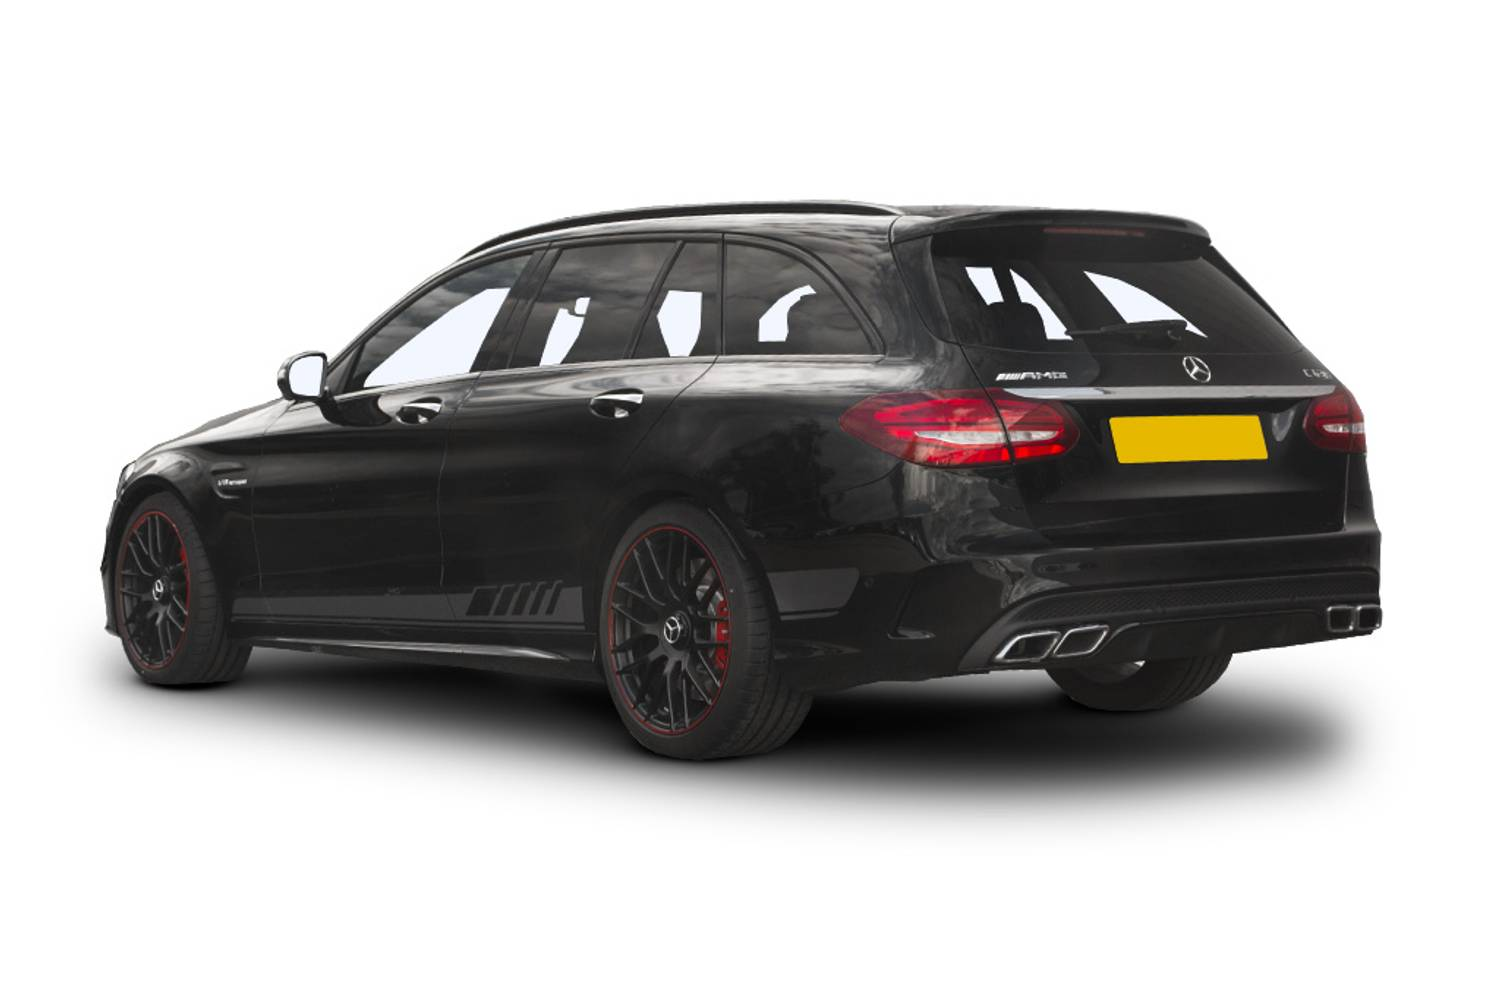 New mercedes benz c class amg estate c43 4matic premium 5 for Mercedes benz c43 amg lease